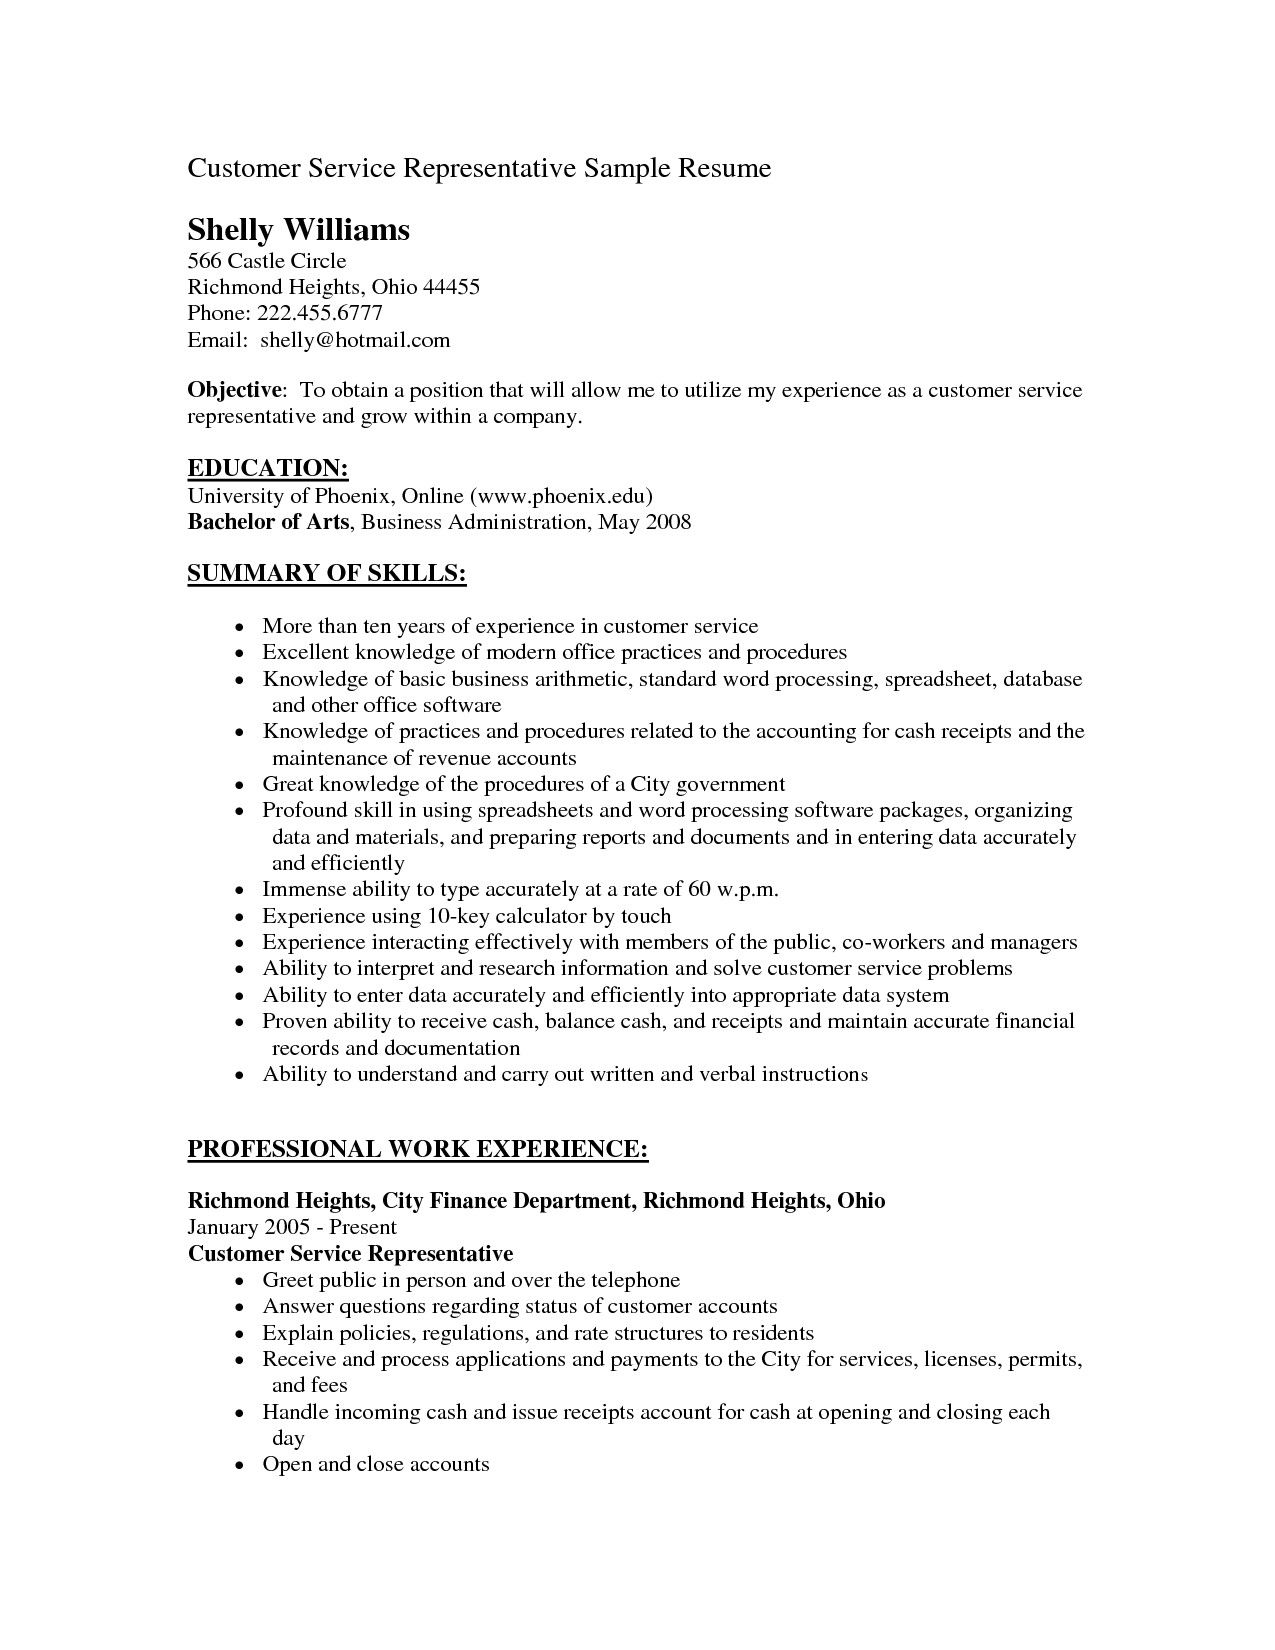 hiring manager resume sample new customer service resume